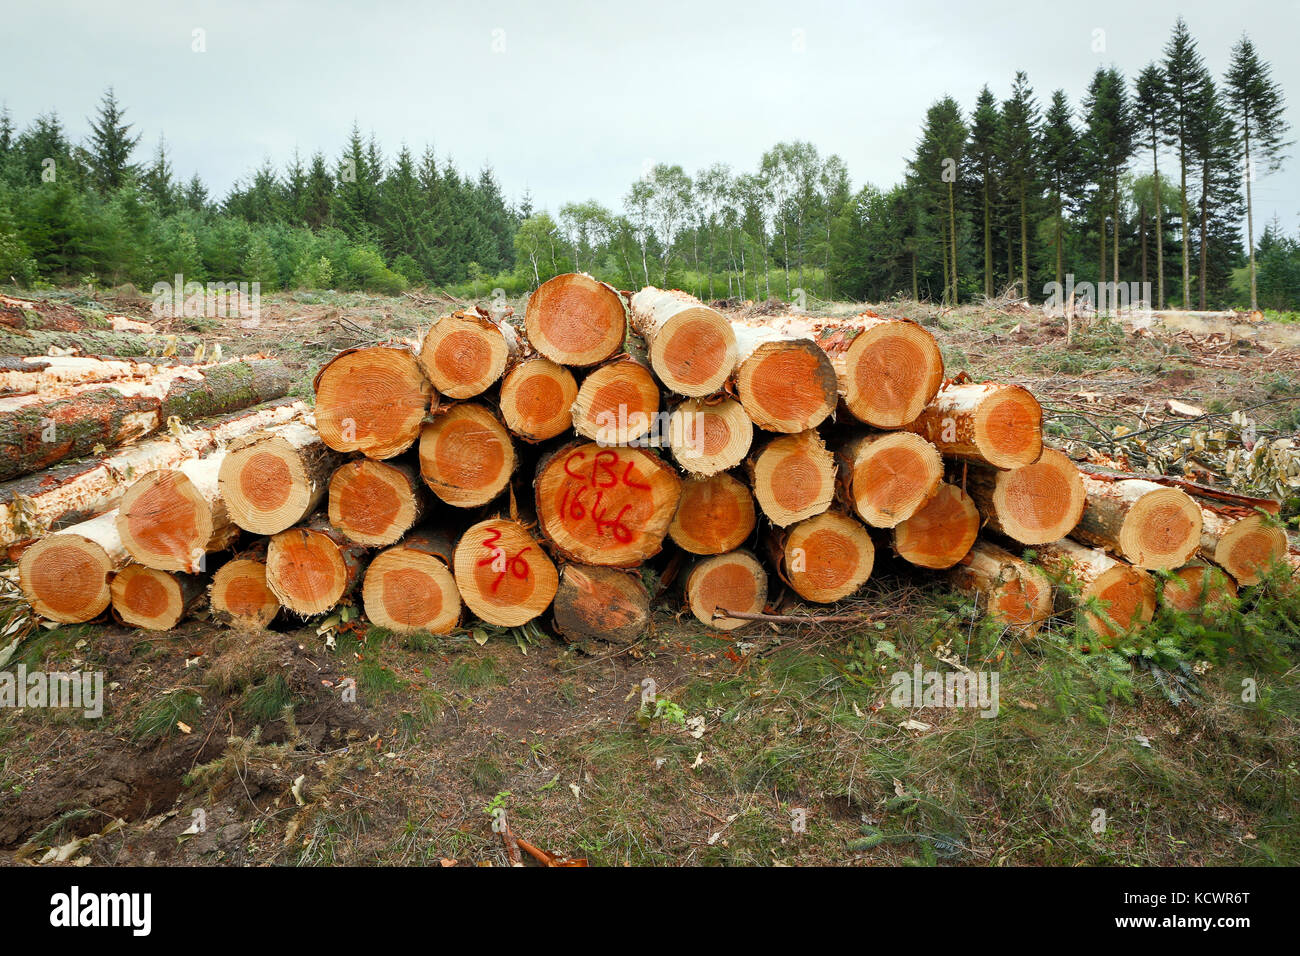 Piled up harvested Pine tree trunks in a deforested landscape. Stock Photo